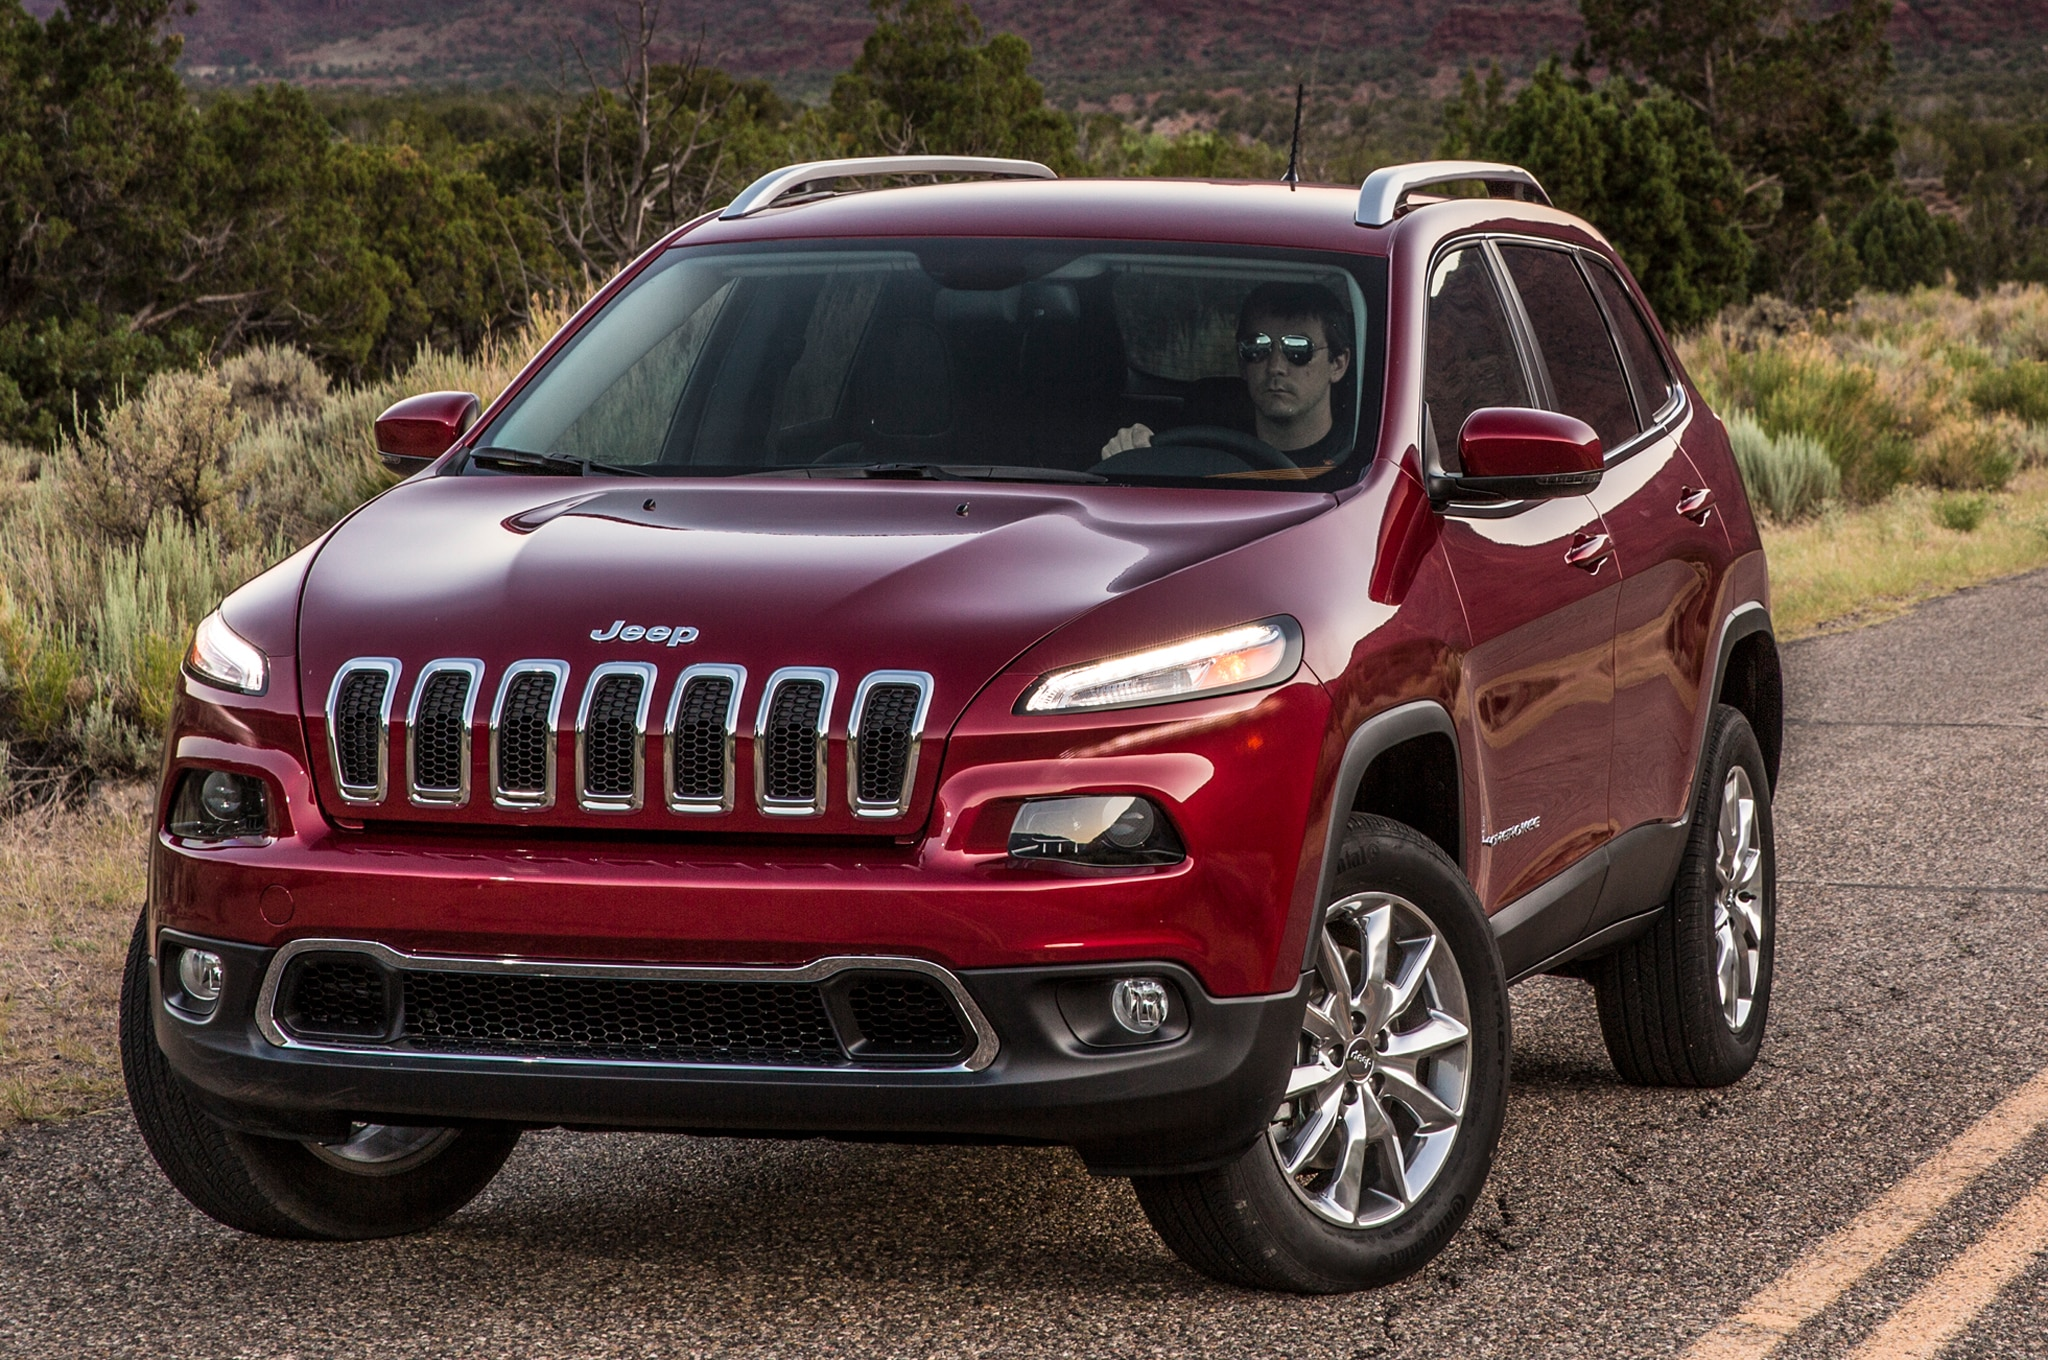 2014 Jeep Cherokee Limited front three quarters view 01